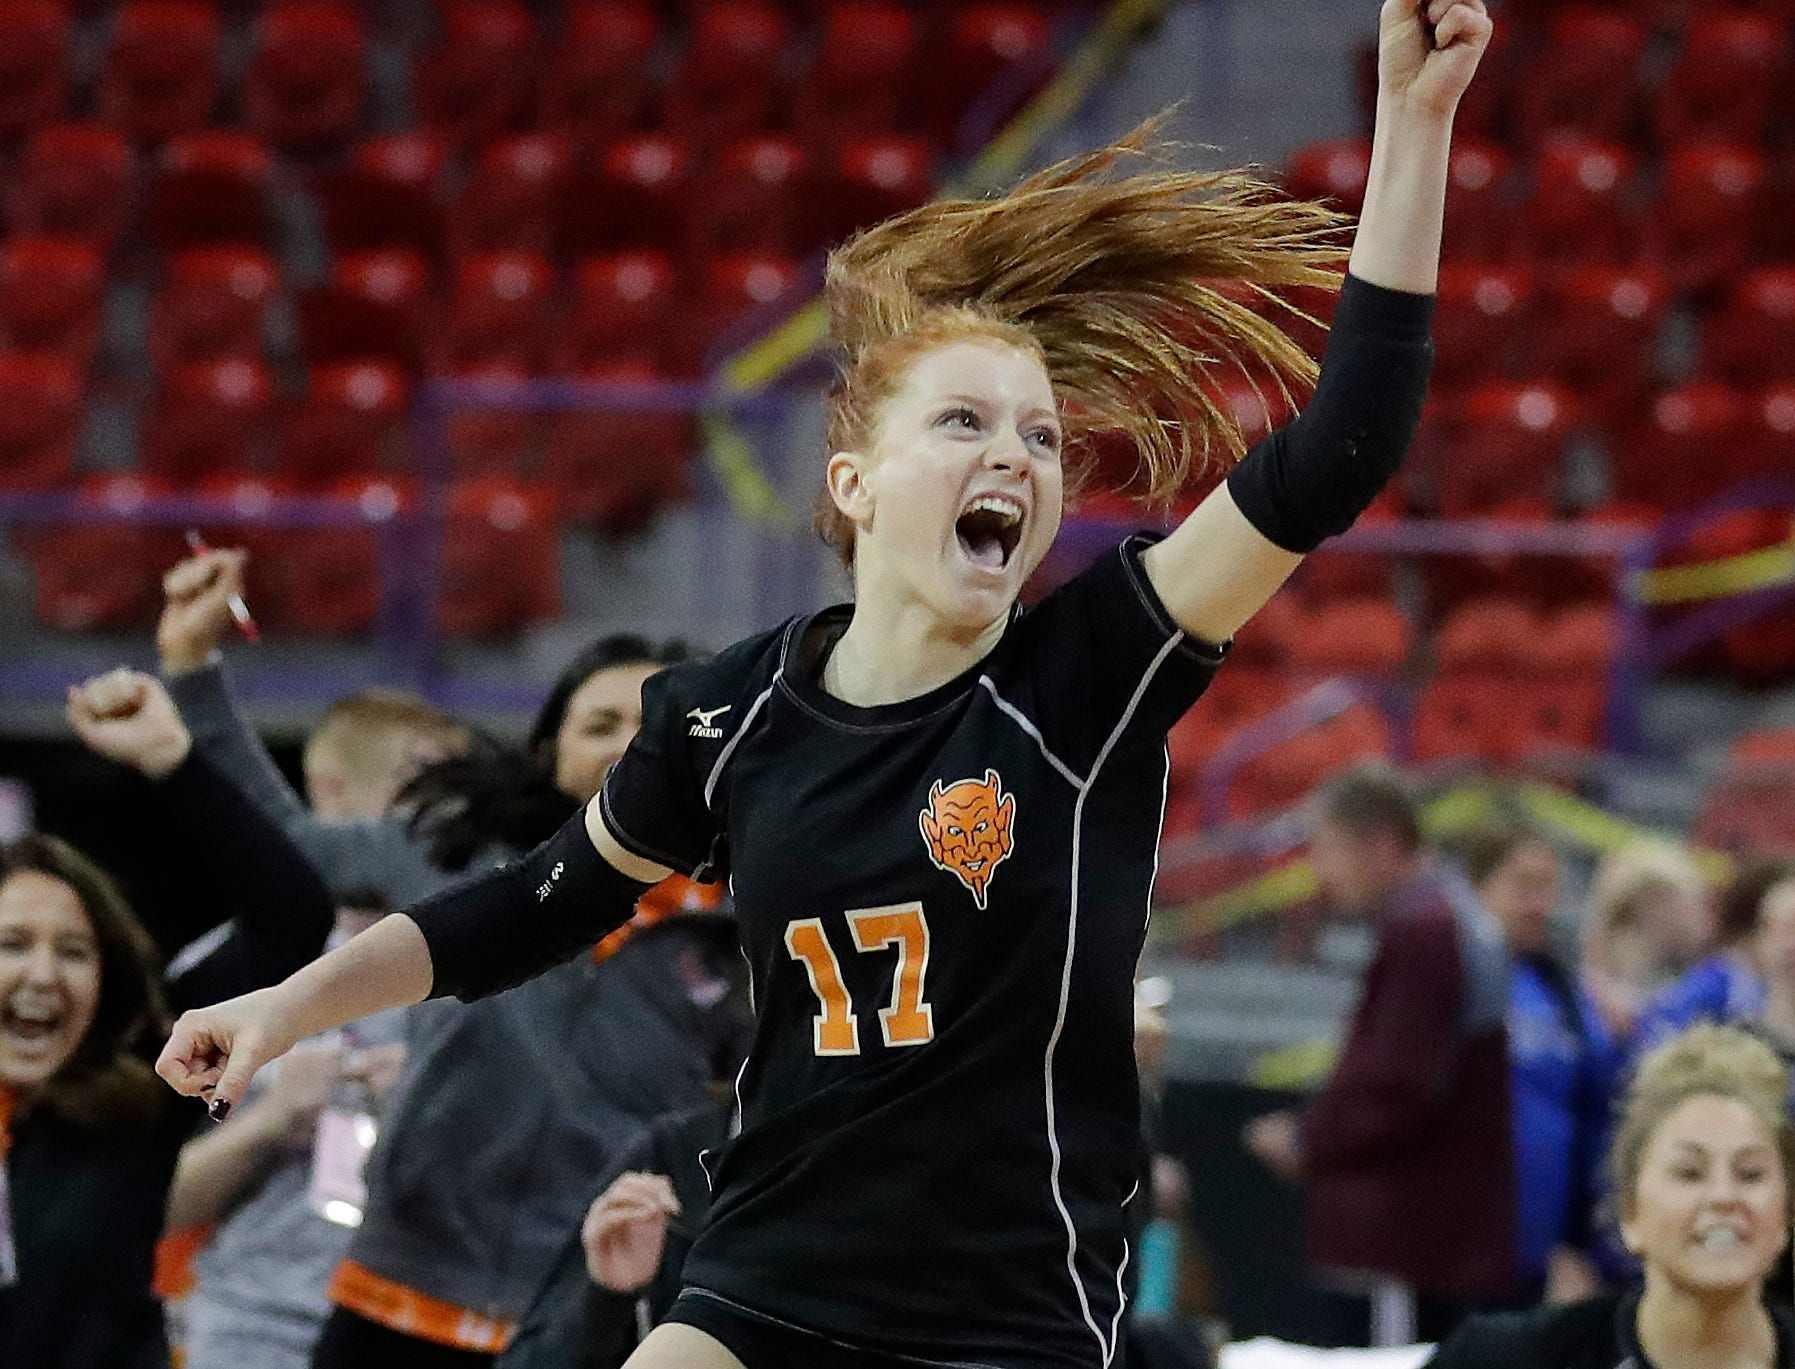 Burlington's Amanda Viel celebrates their win over 